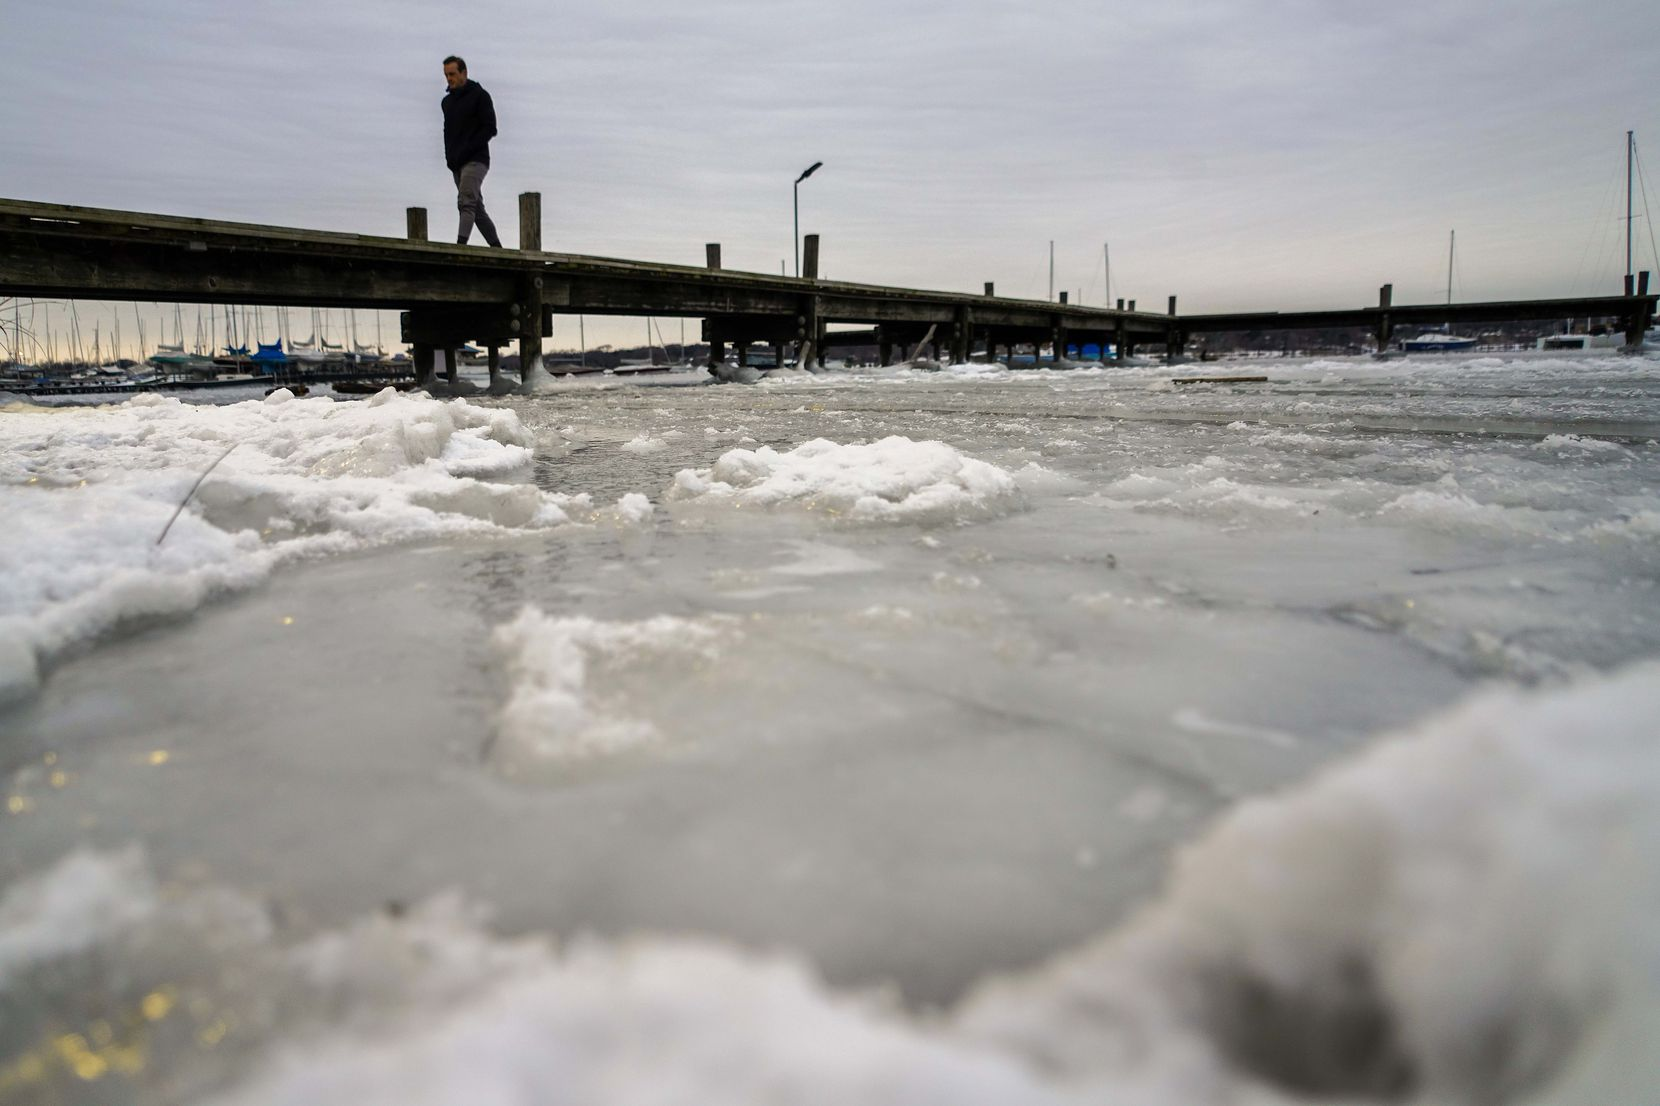 Frozen waters of White Rock Lake surround a pier after a winter storm brought snow and freezing temperatures to North Texas on Tuesday, Feb. 16, 2021, in Dallas. Another winter storm could dump 5 more inches of snow on Dallas-Fort Worth. (Smiley N. Pool/The Dallas Morning News)